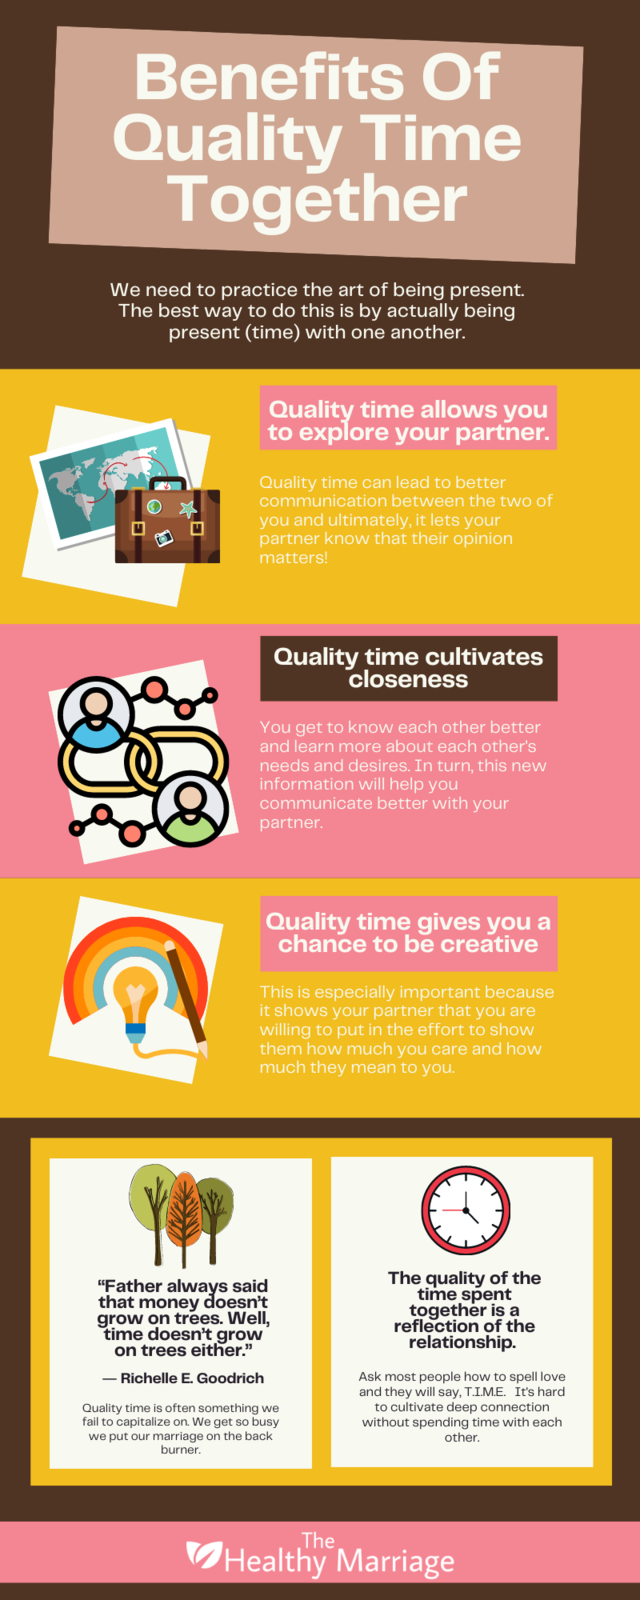 3 Benefits of Quality Time